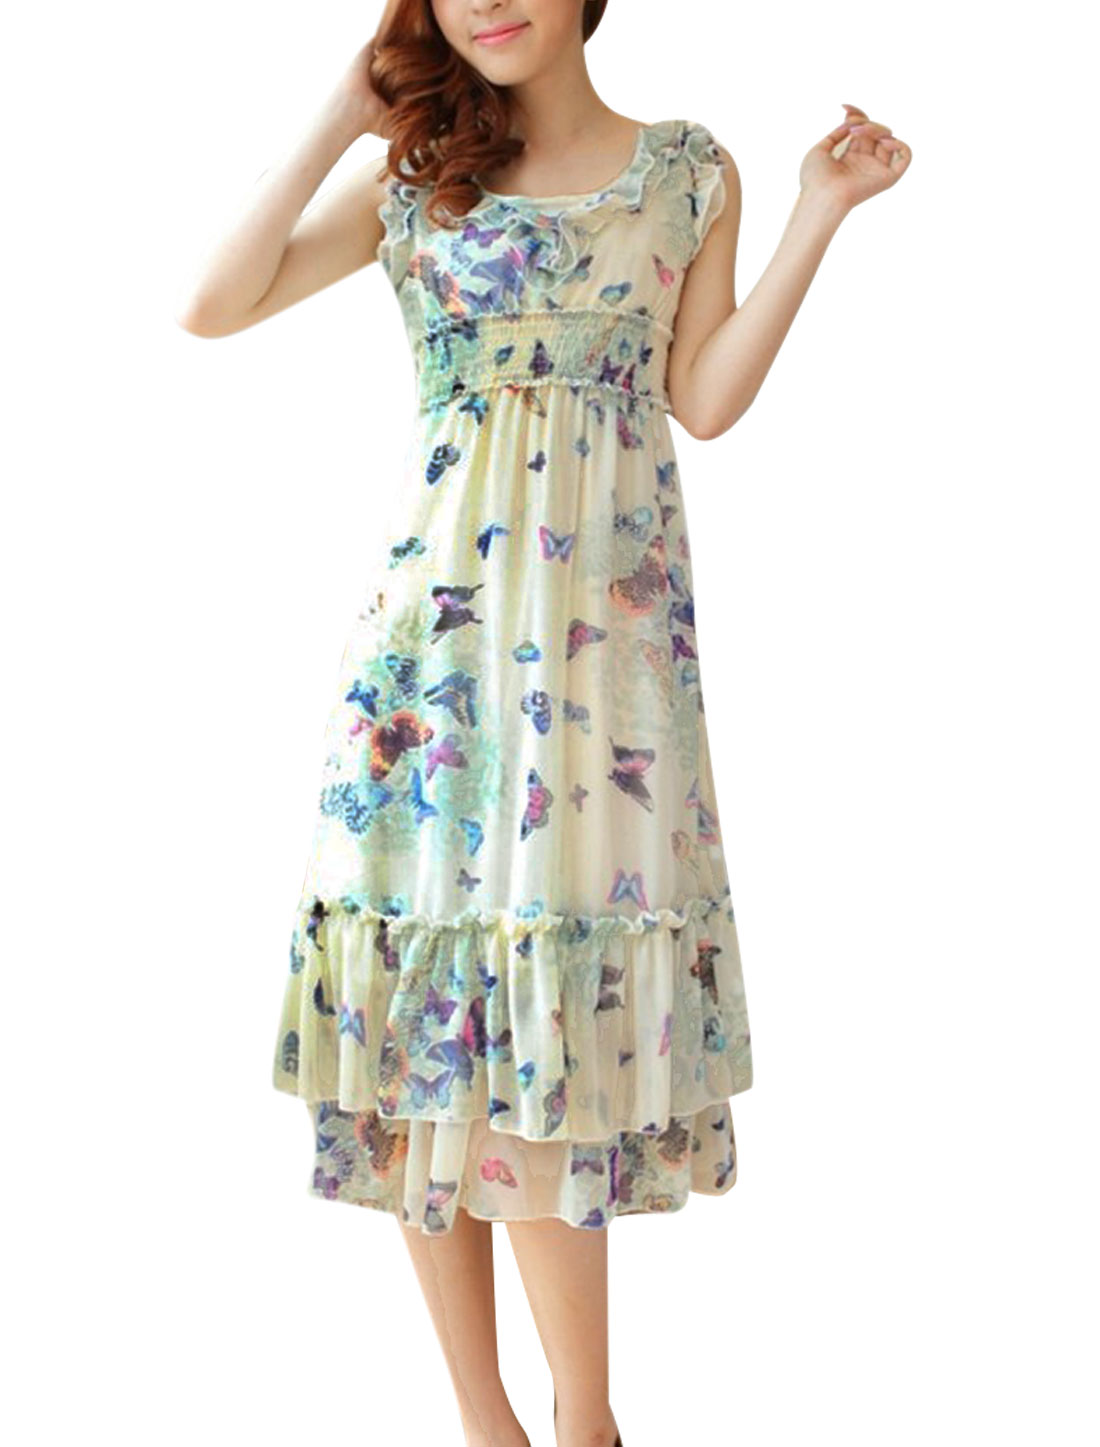 Lady Sleeveless Semi-sheer Butterfly Pattern Tiered Dress Beige Light Green XS